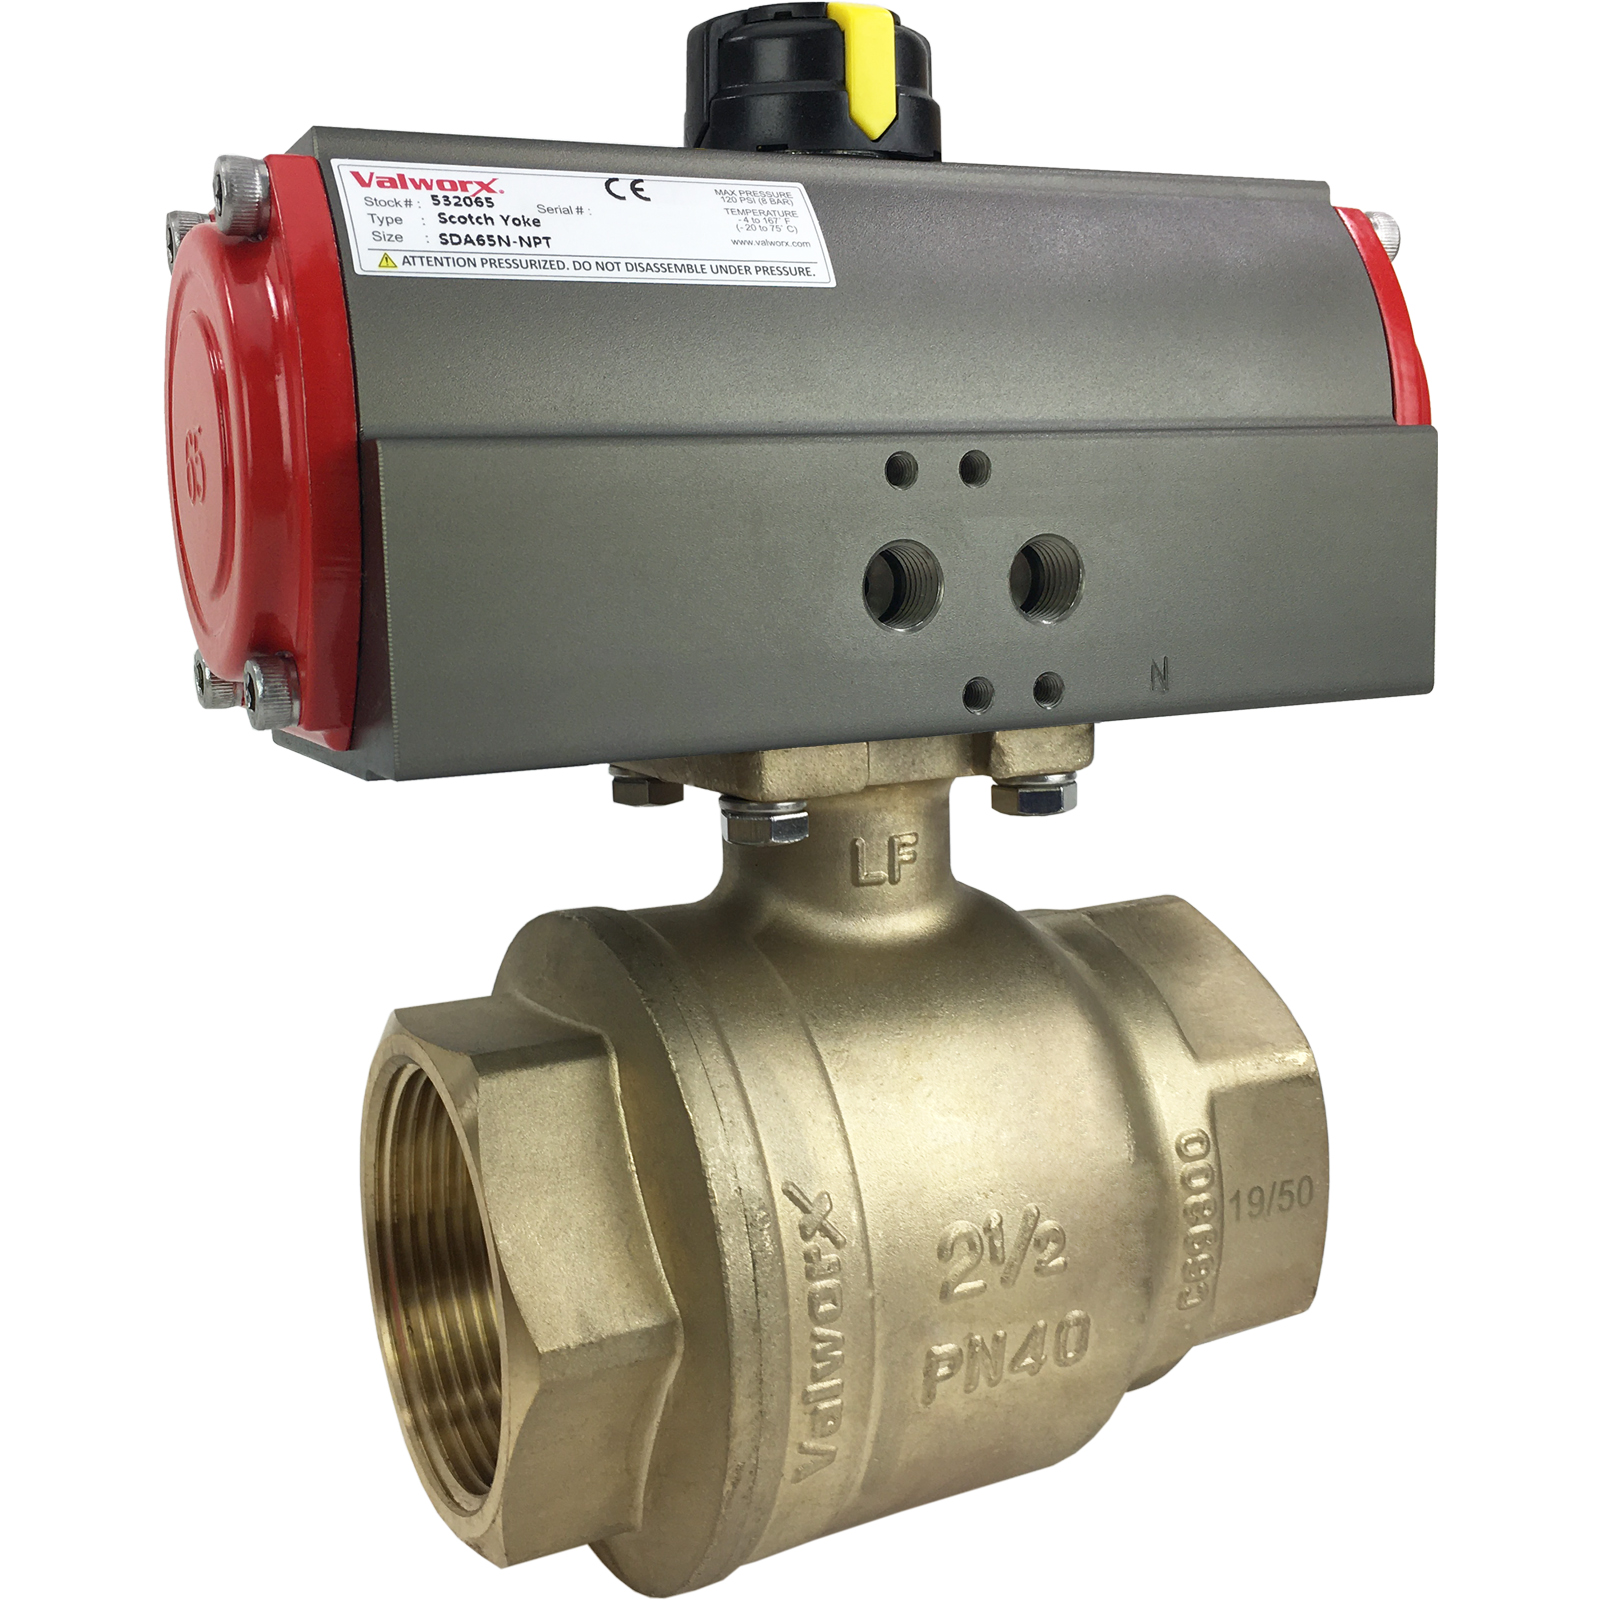 "2-1/2"" Air Actuated Brass Ball Valve - Double Acting Scotch Yoke"